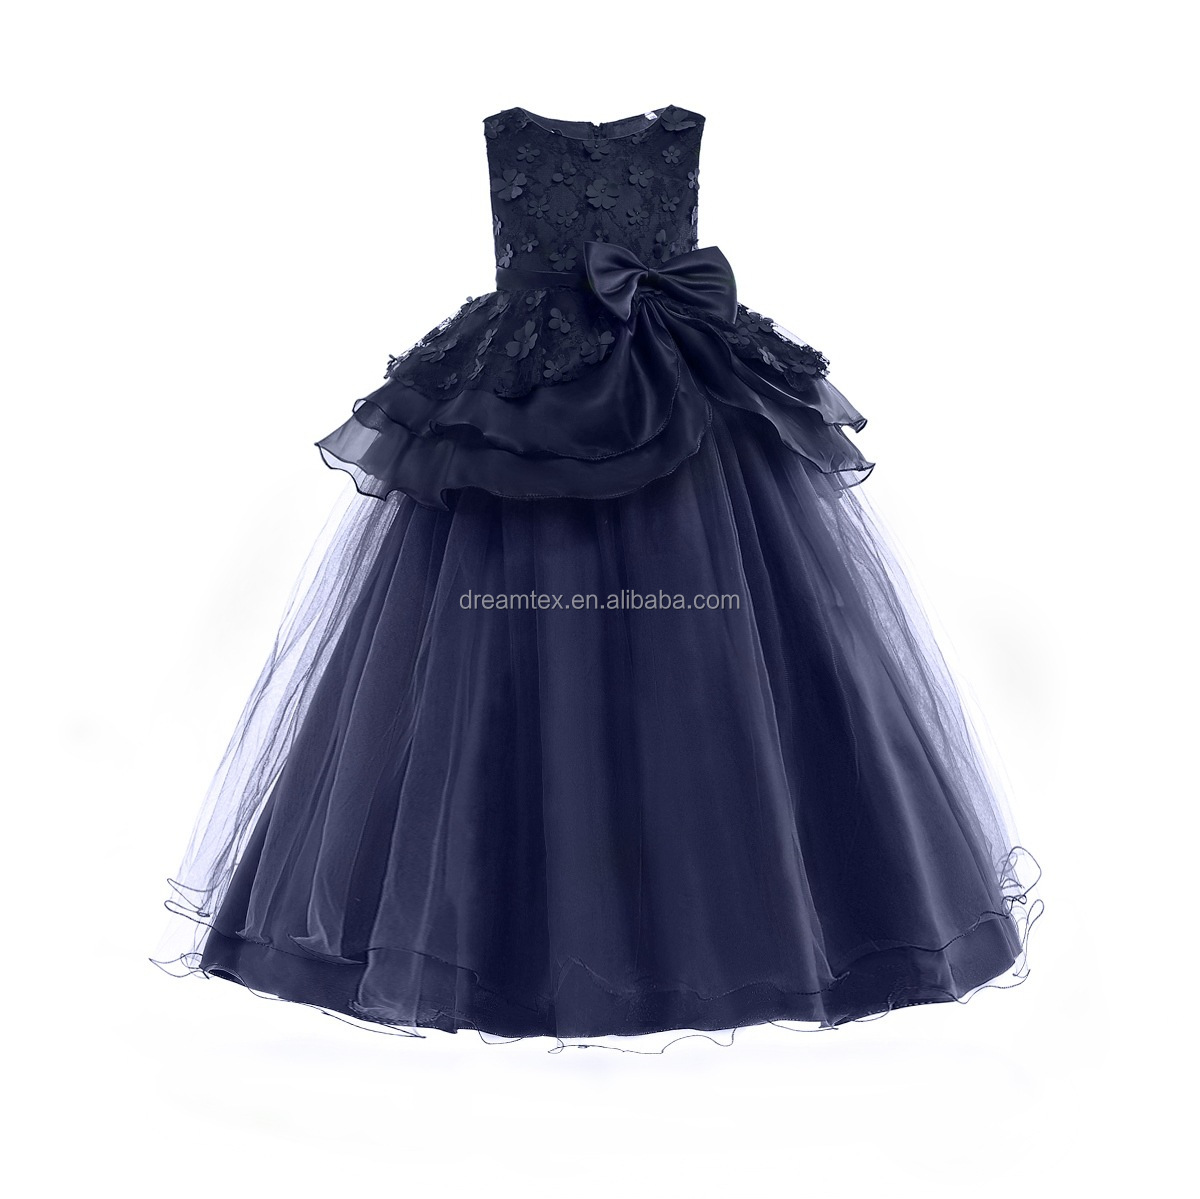 2019 events  dress gradulation gown fashion  wedding dress  super  young lady baby  girls dresses